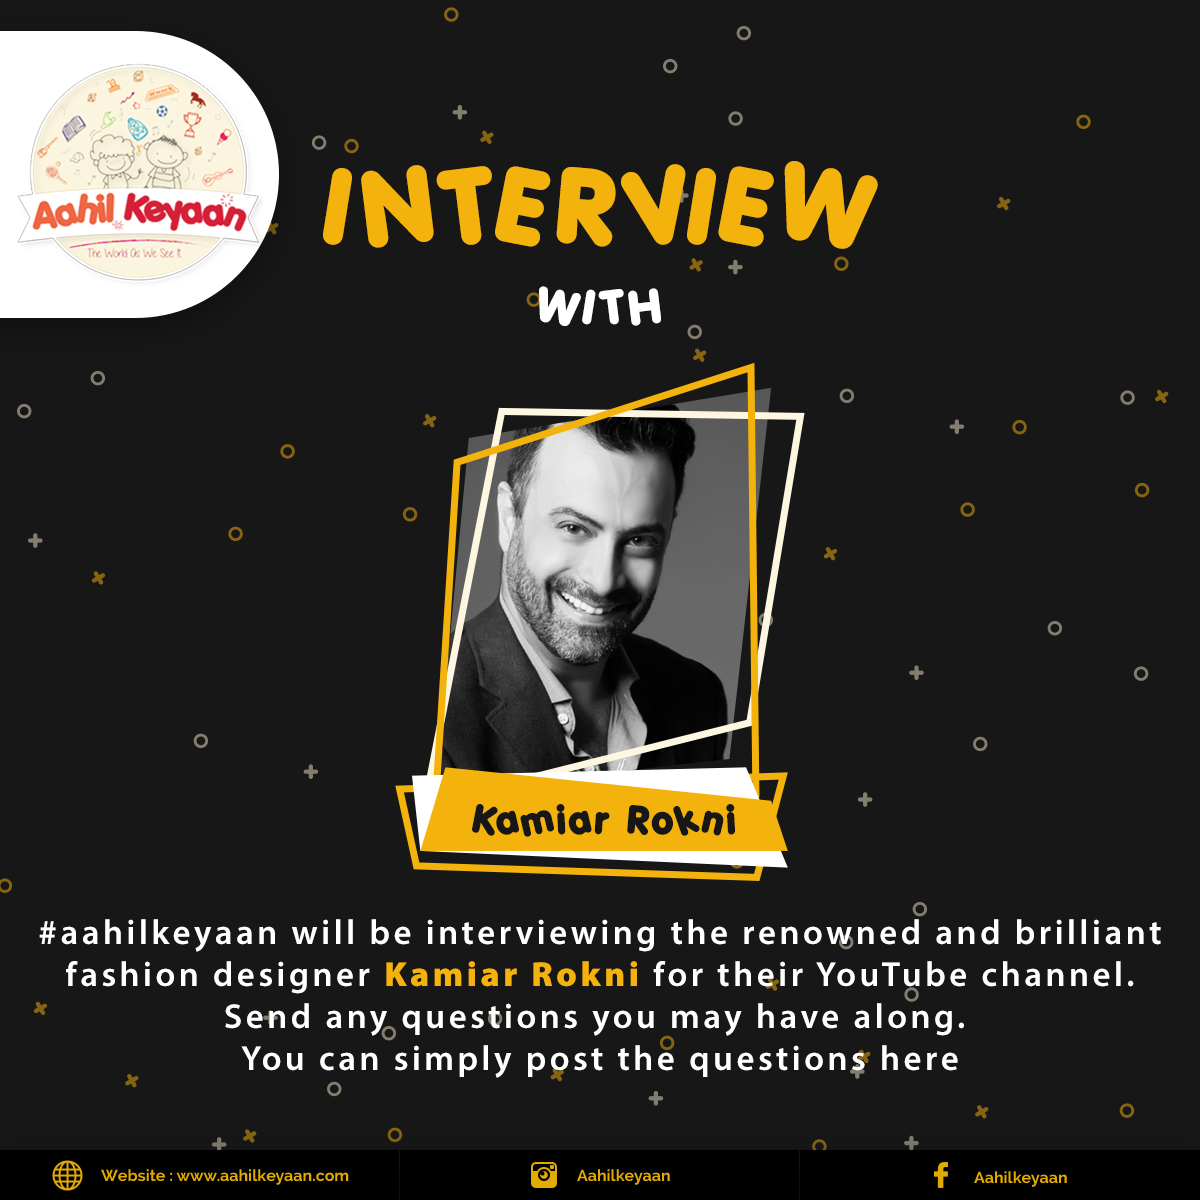 Interview With Kamiar Rokni Facebook Post Design